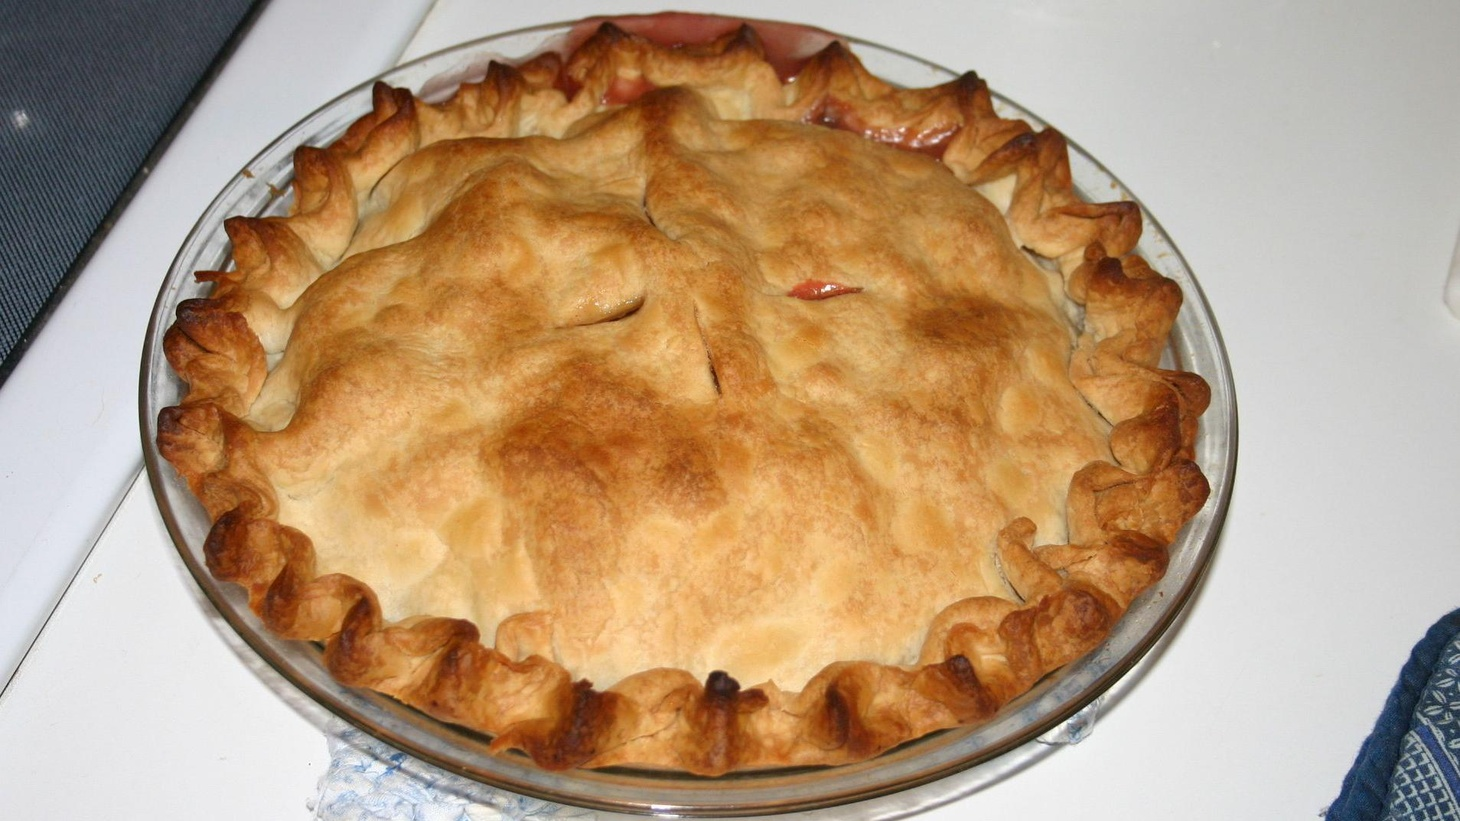 "Beth Kendrick, avid baker and author of the novel, "" The Bake-Off ,"" shares the recipe for apple pie from her novel."